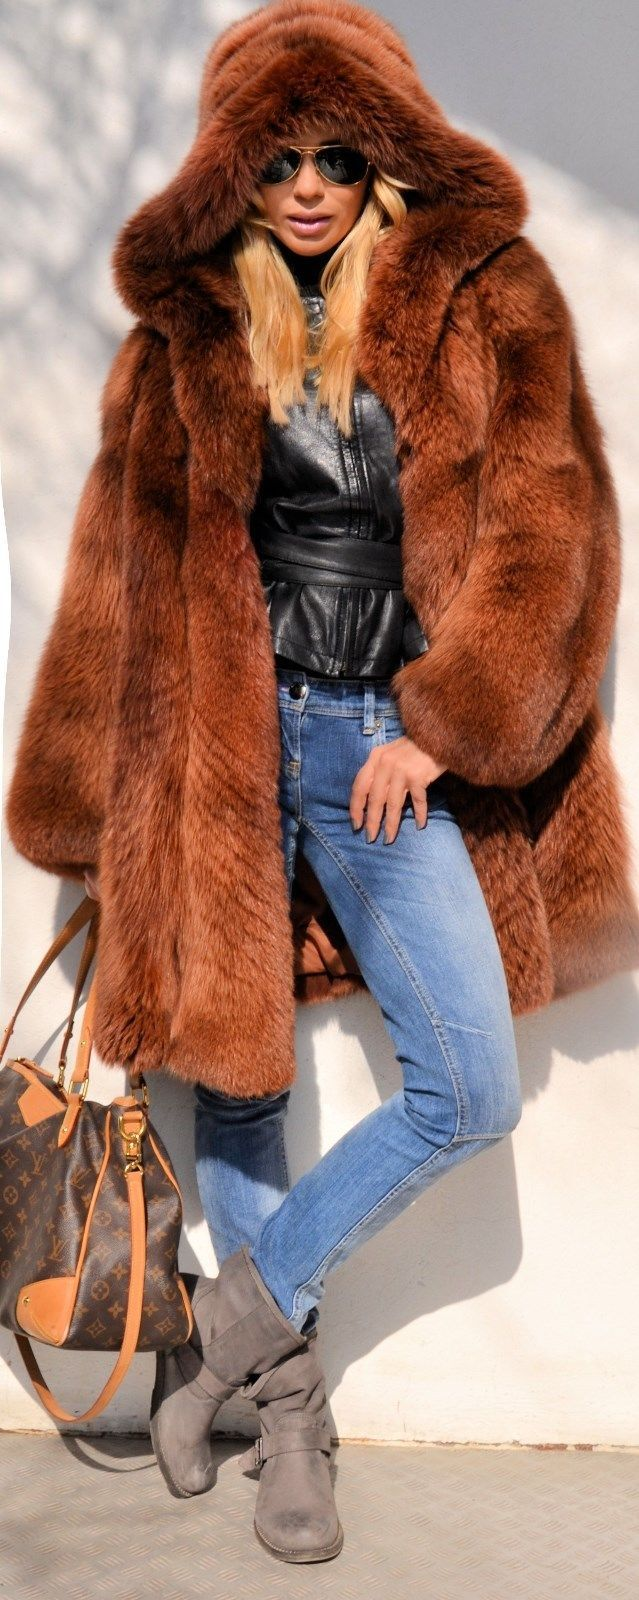 25  cute Fur coat ideas on Pinterest | Fur coats, Faux fur coats ...